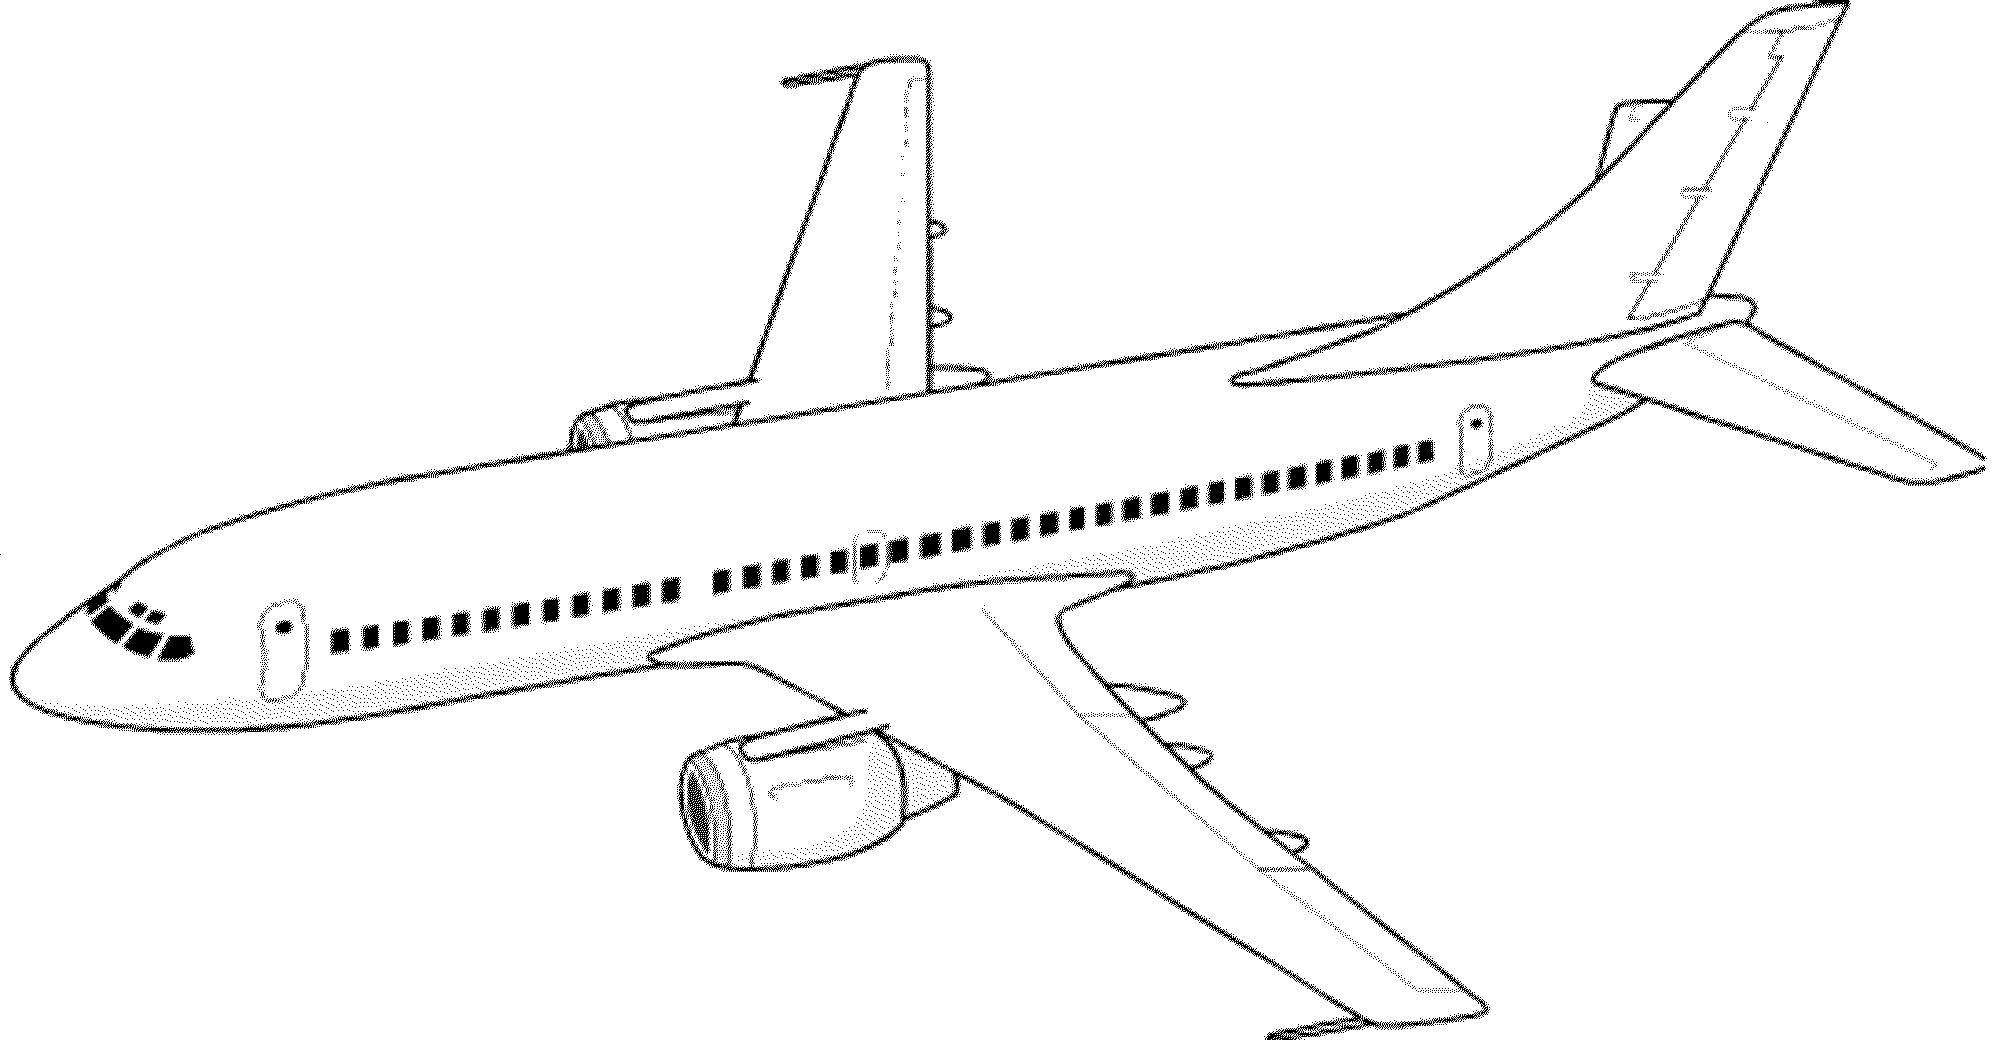 Coloring Pages Airplanes : Airplane coloring pages to download and print for free